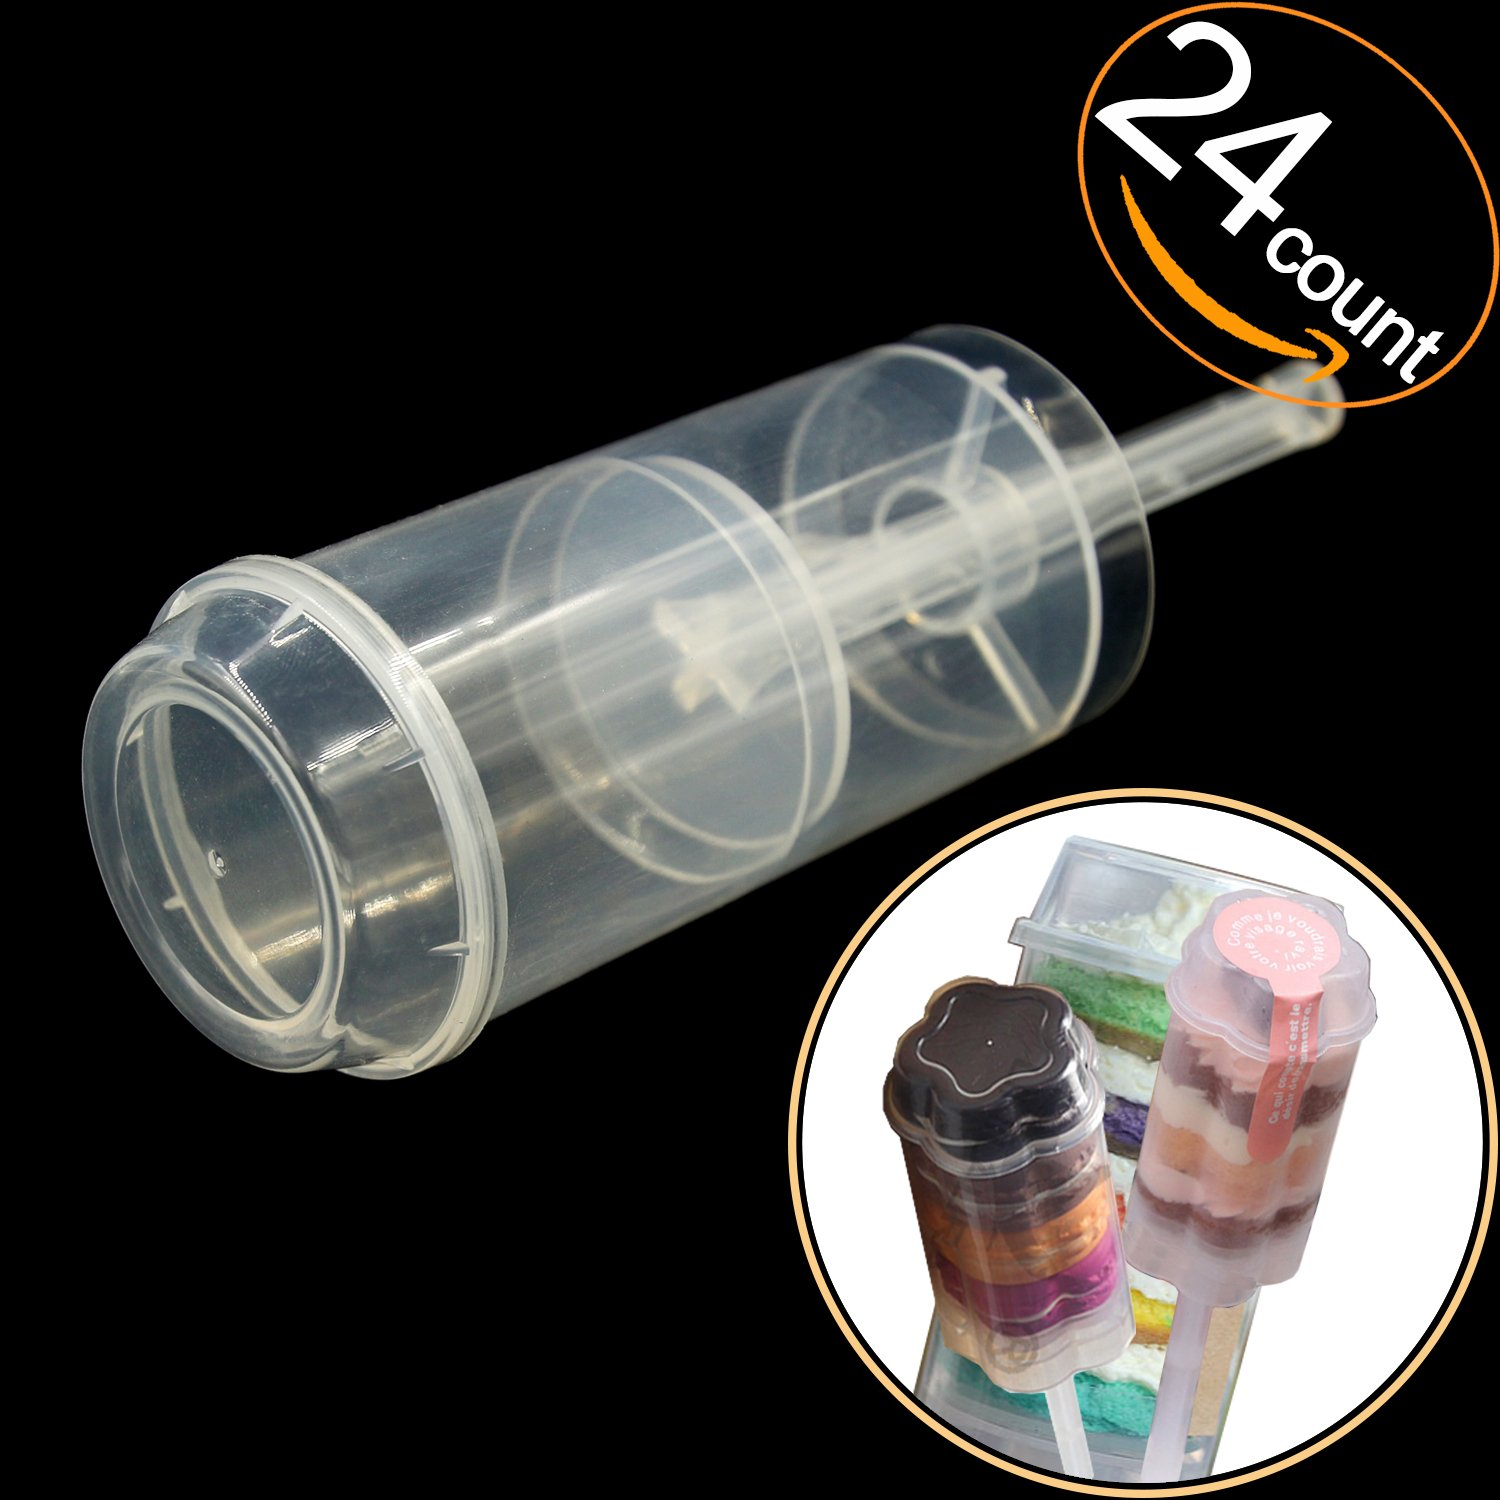 EKIND Clear Push-Up Cake Pop Shooter (Push Pops) Plastic Containers with Lids, Base & Sticks, Pack of 24 by EKIND (Image #2)